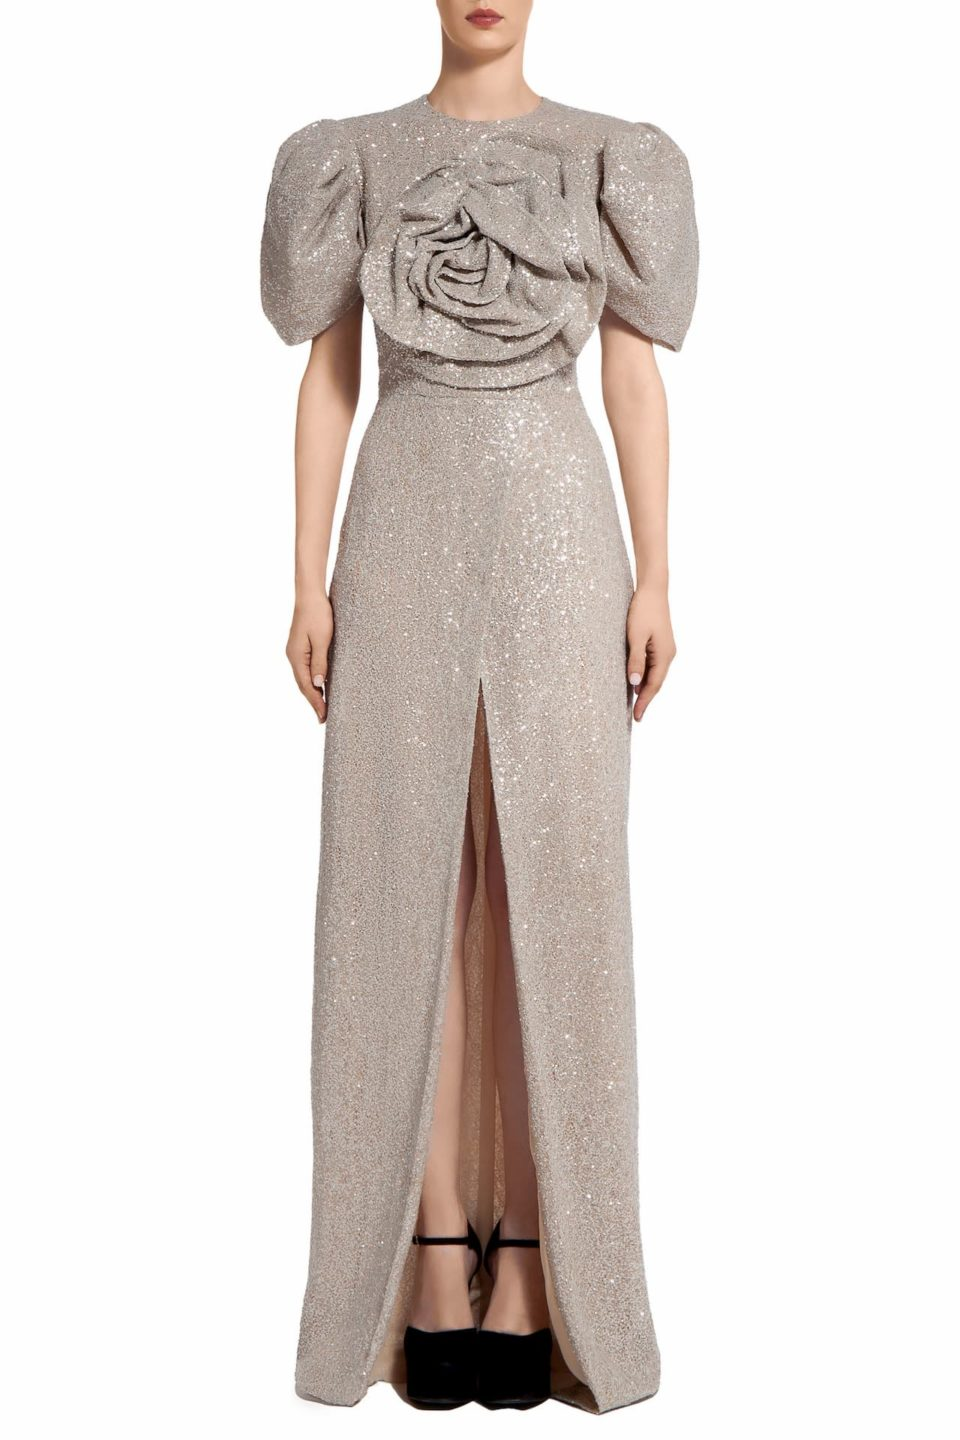 Prinda PR2090 Beige Gold Sequin Wrap-Front Dress with Oversized Rosette Bodice